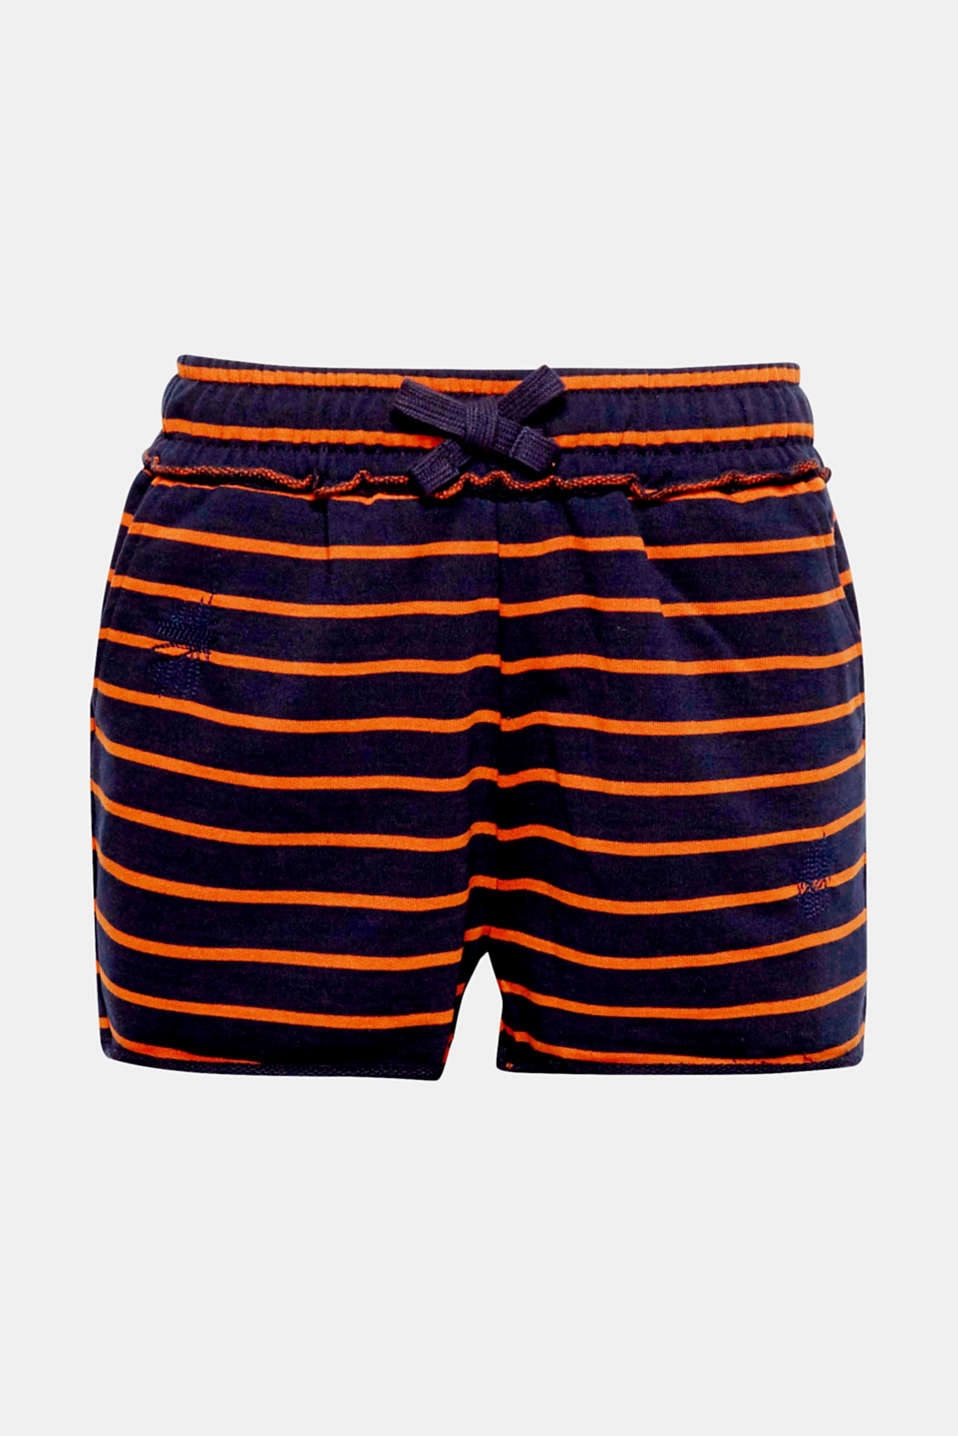 Made of soft sweatshirt fabric with casual, unfinished edges, these shorts are the perfect choice for laid-back summer looks.